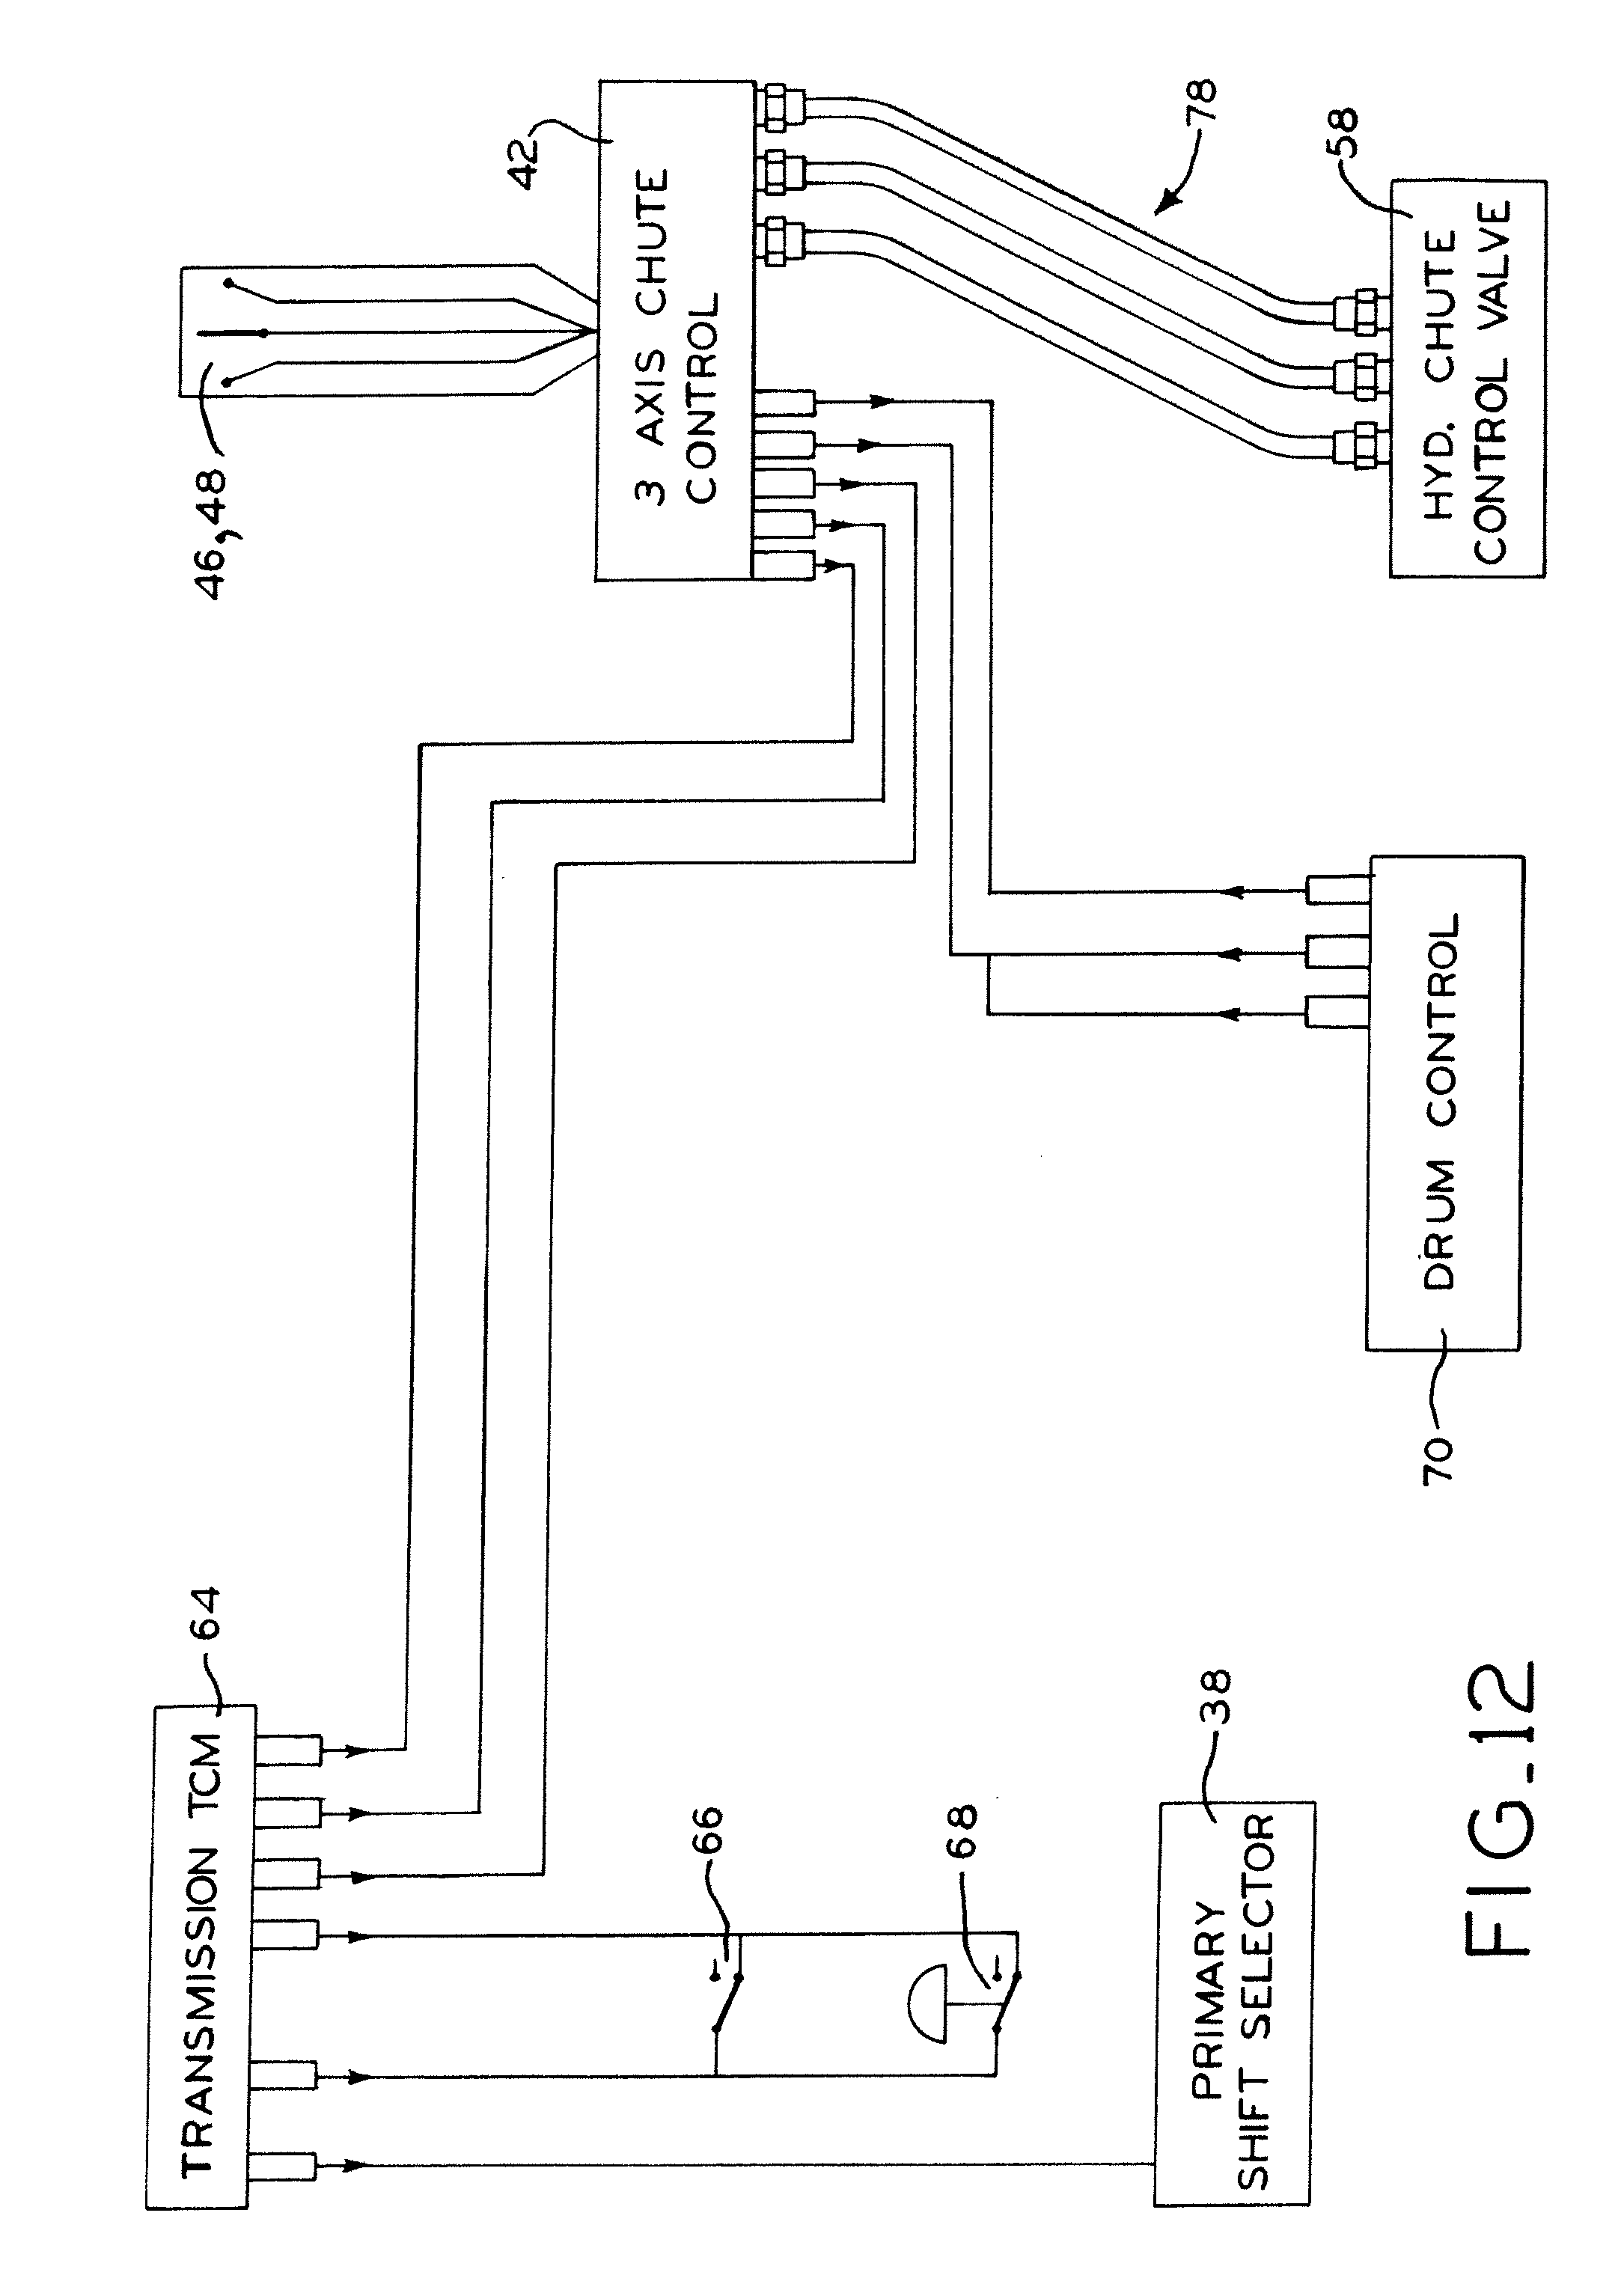 Wiring Diagram For Oshkosh Mixer Audio Connector Diagrams